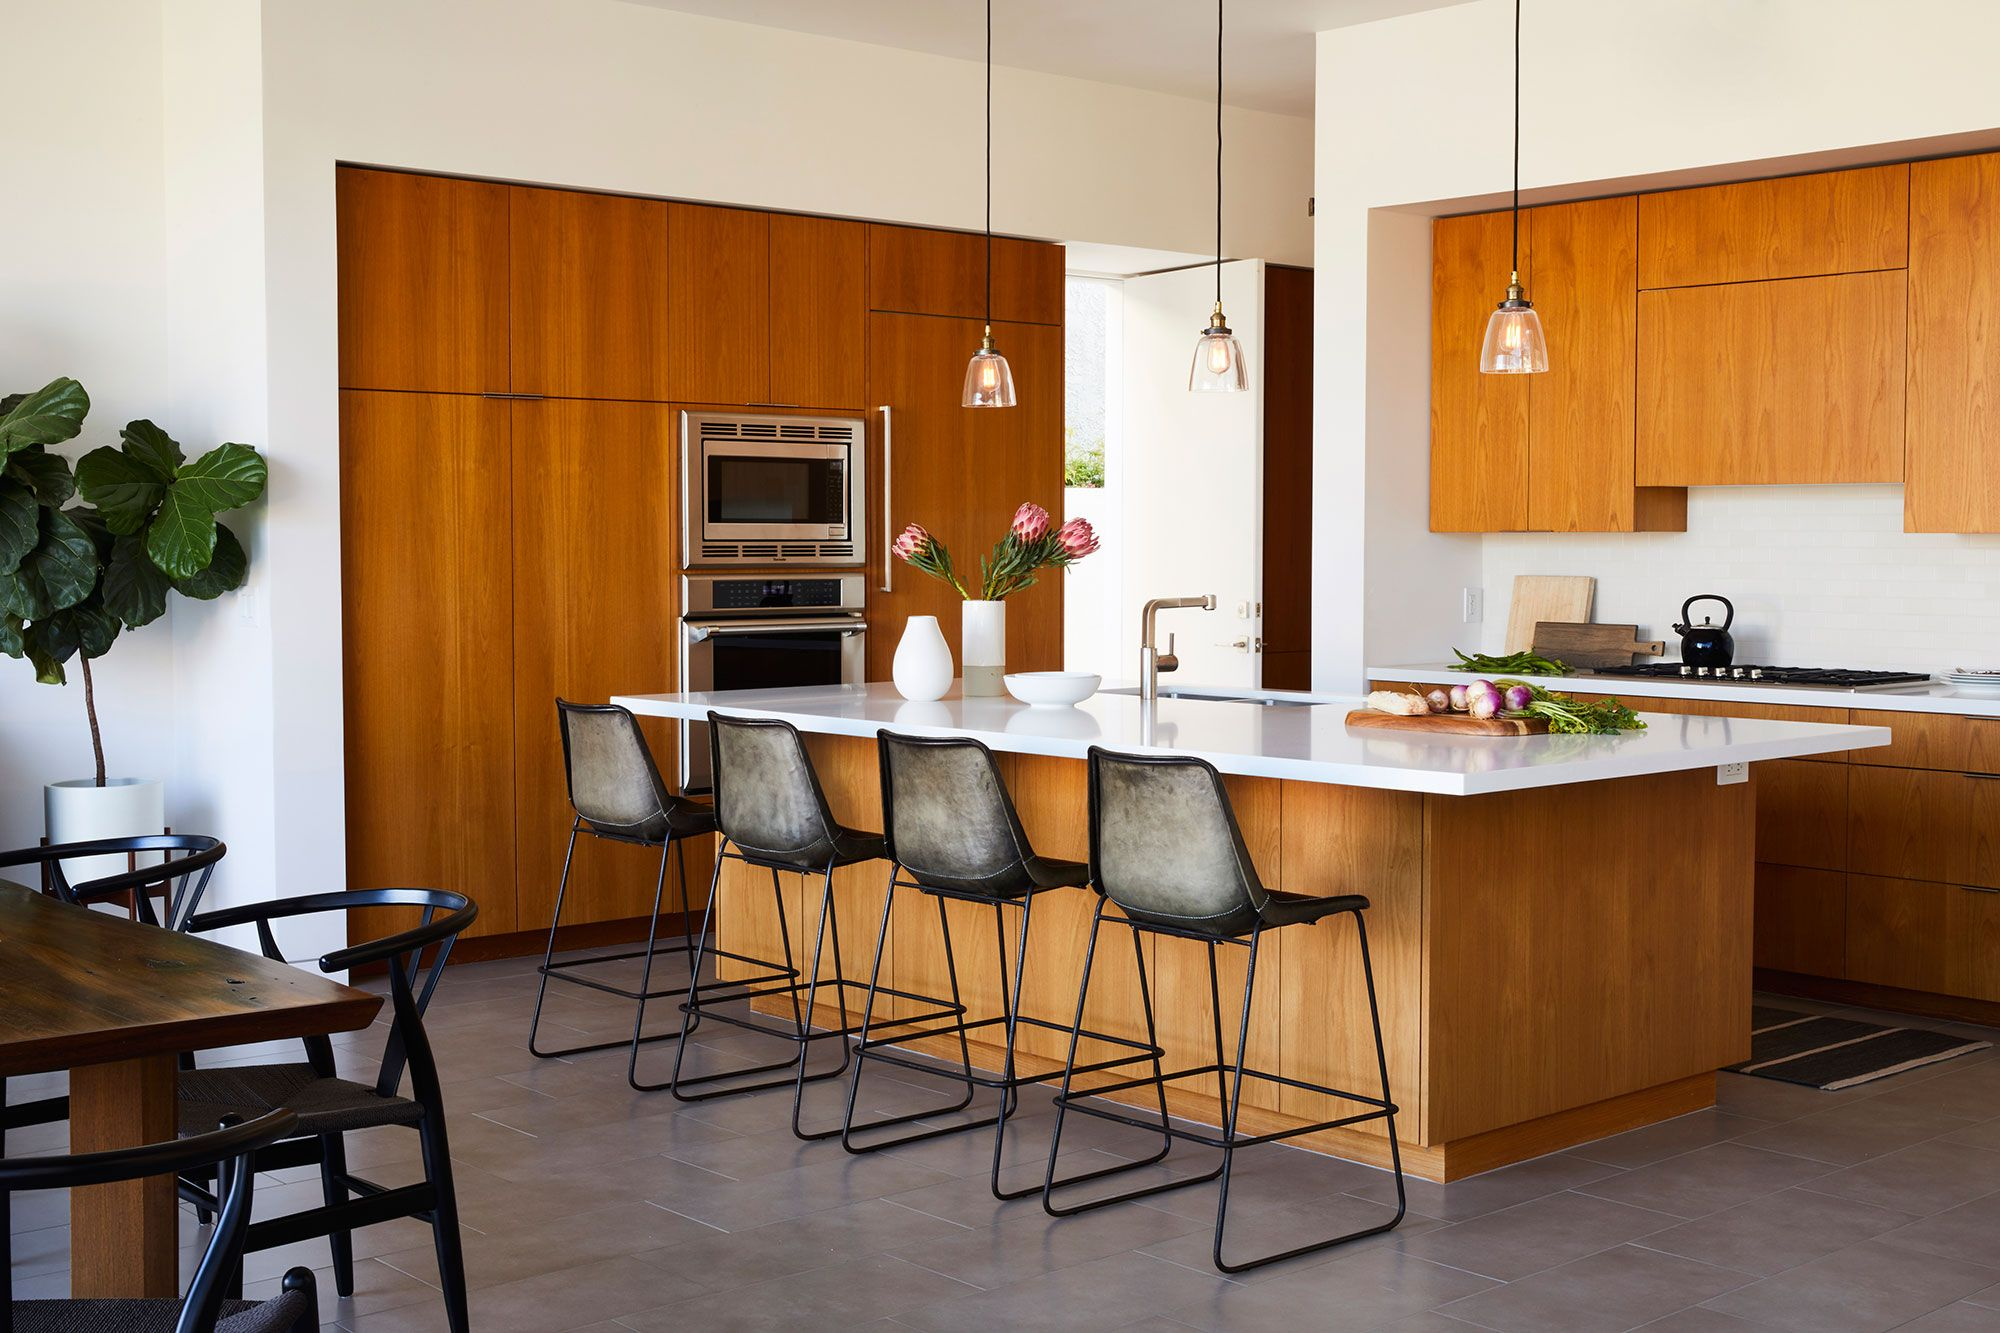 10 Modern Cabinet Ideas Thatu0027ll Freshen Up Your Kitchen